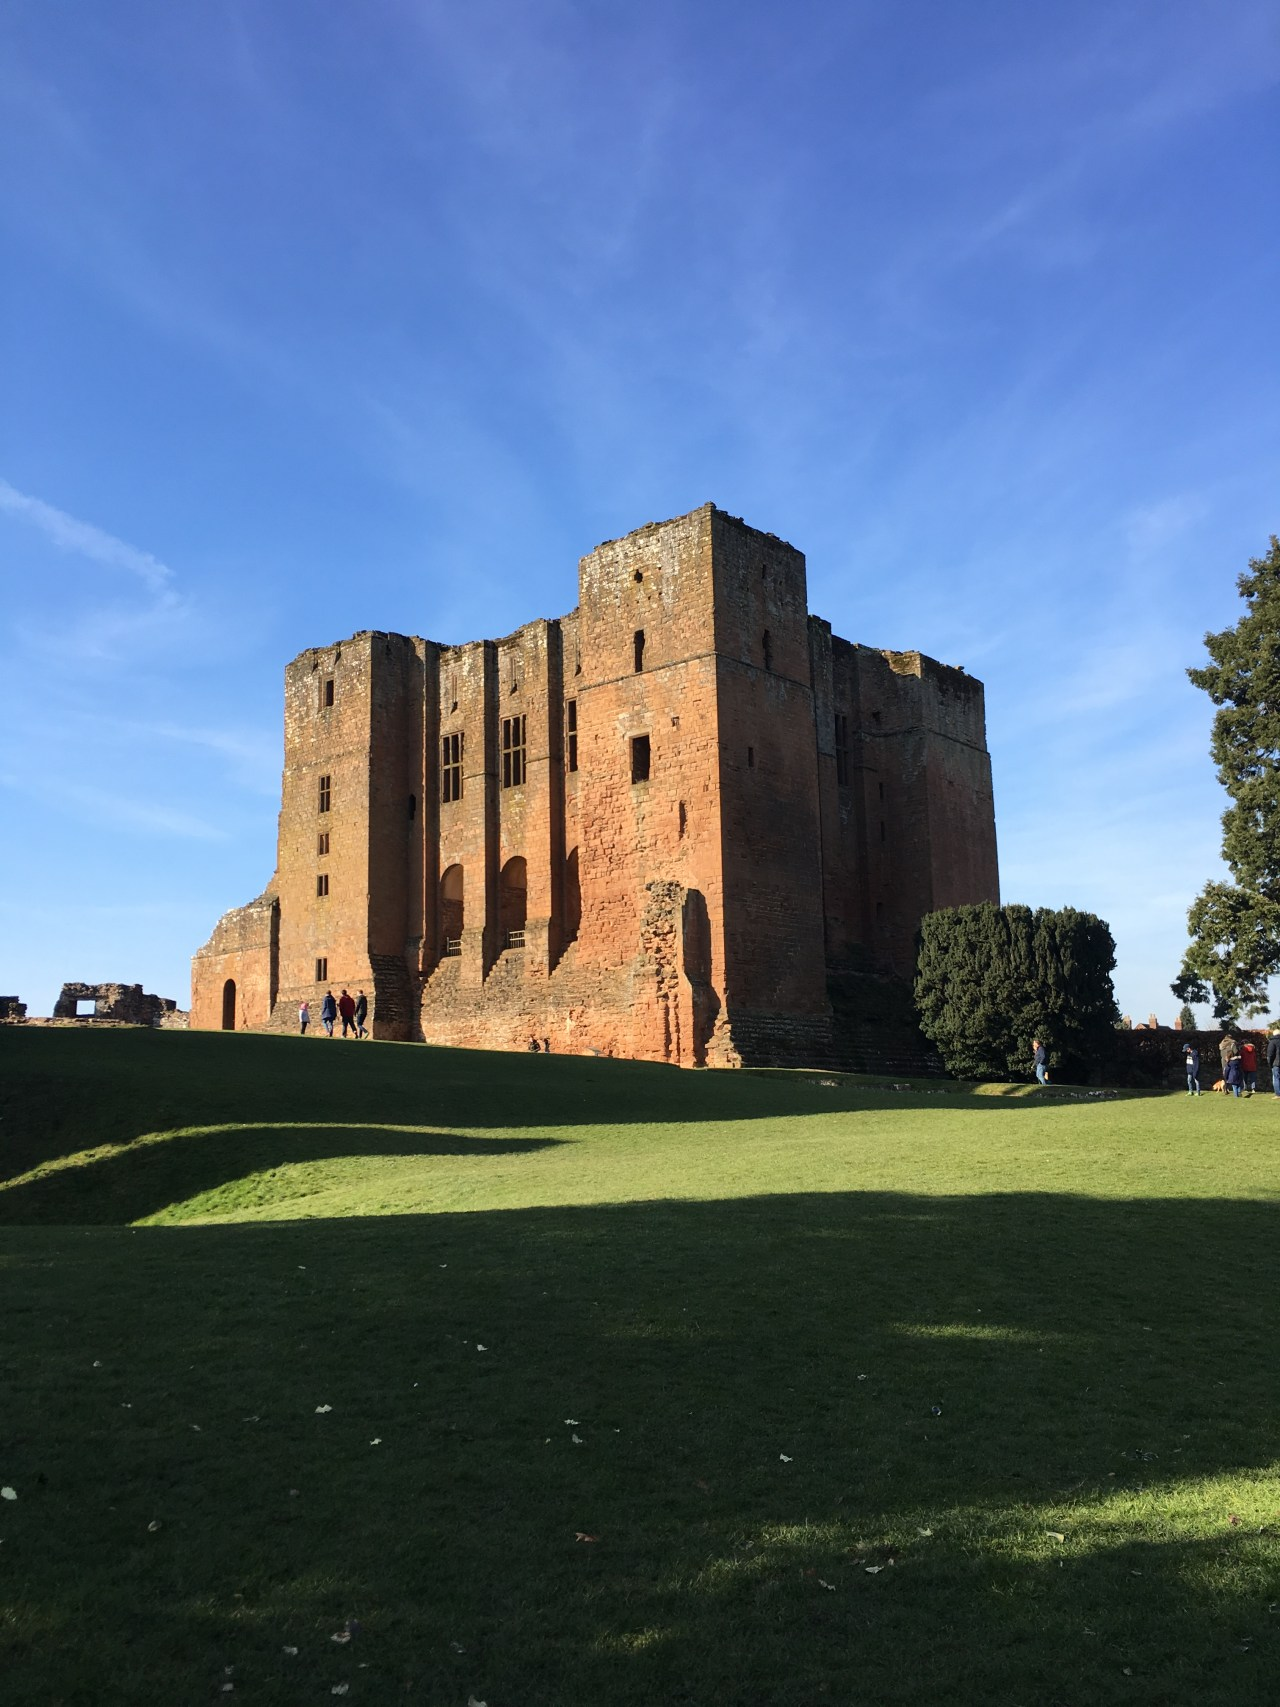 The Norman Keep at Kenilworth Castle